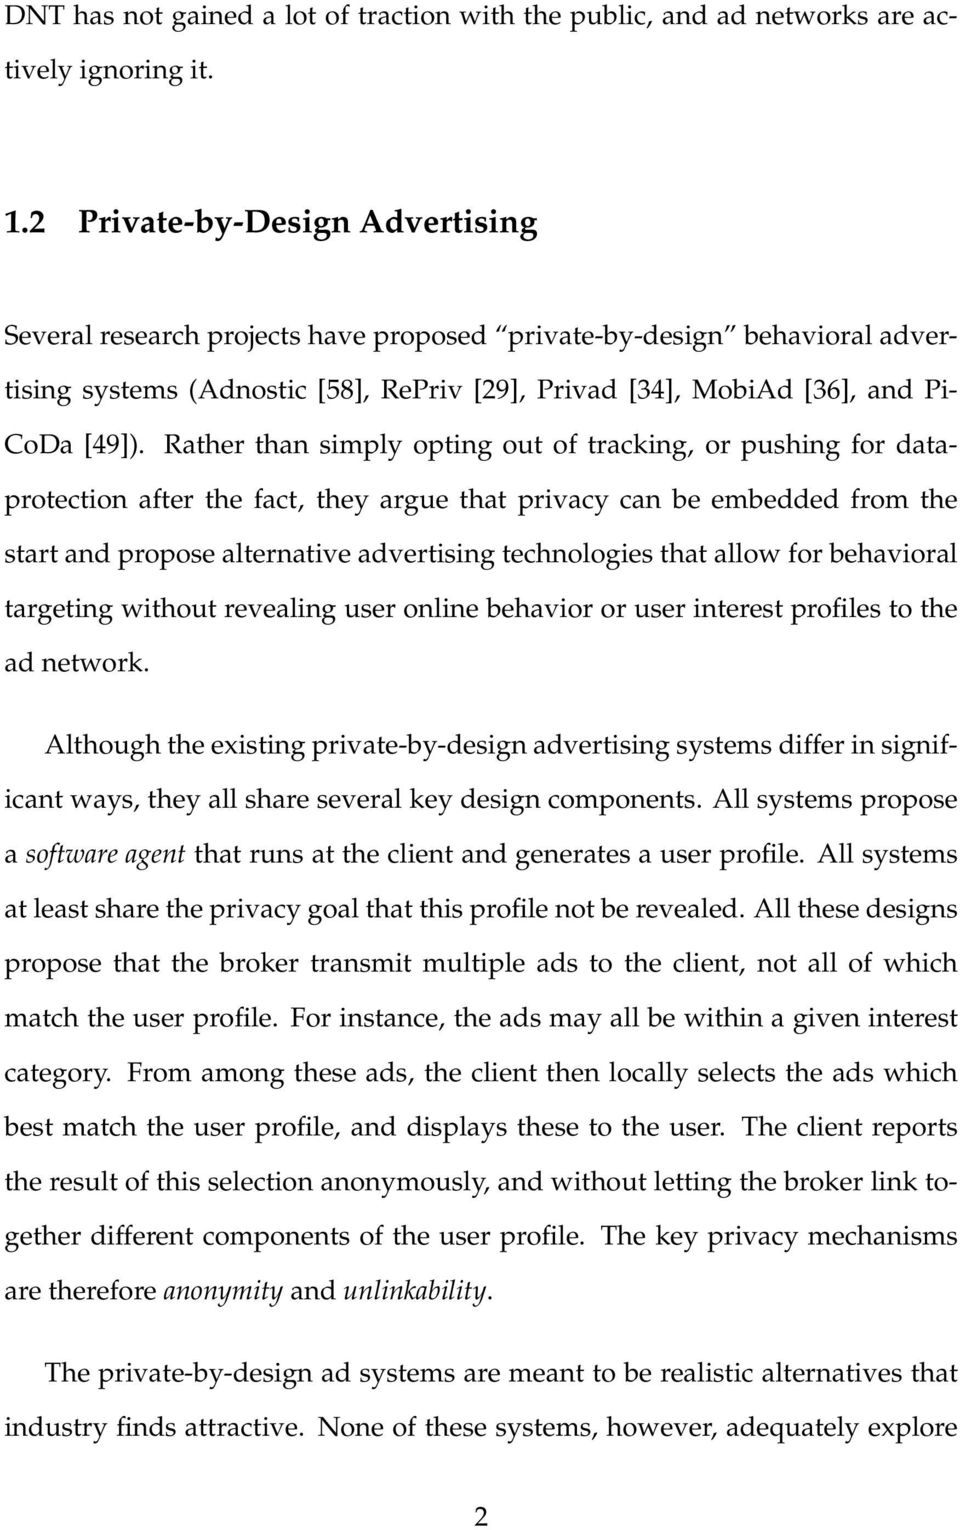 Rather than simply opting out of tracking, or pushing for dataprotection after the fact, they argue that privacy can be embedded from the start and propose alternative advertising technologies that